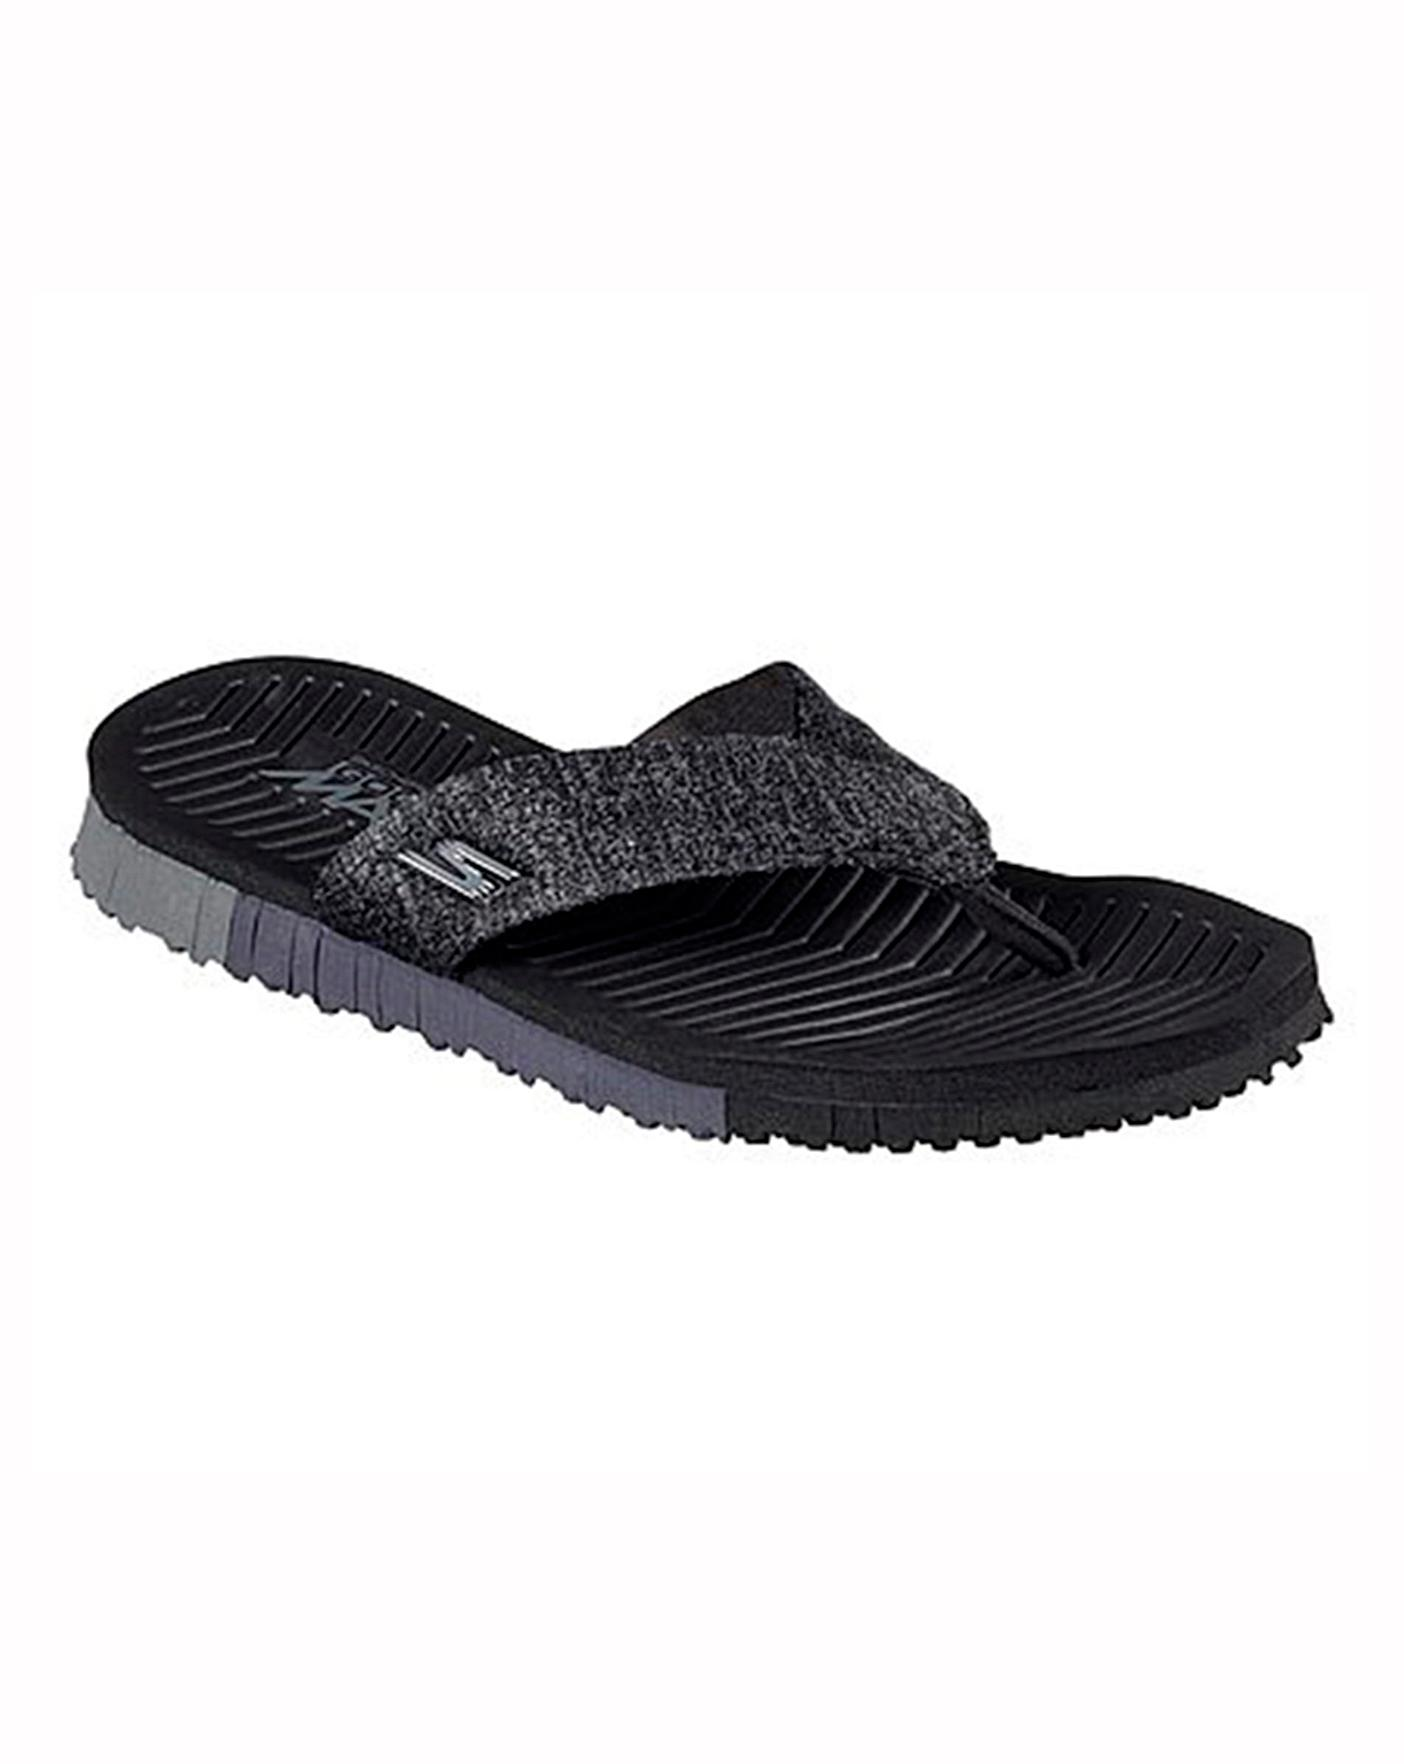 skechers on the go sandals